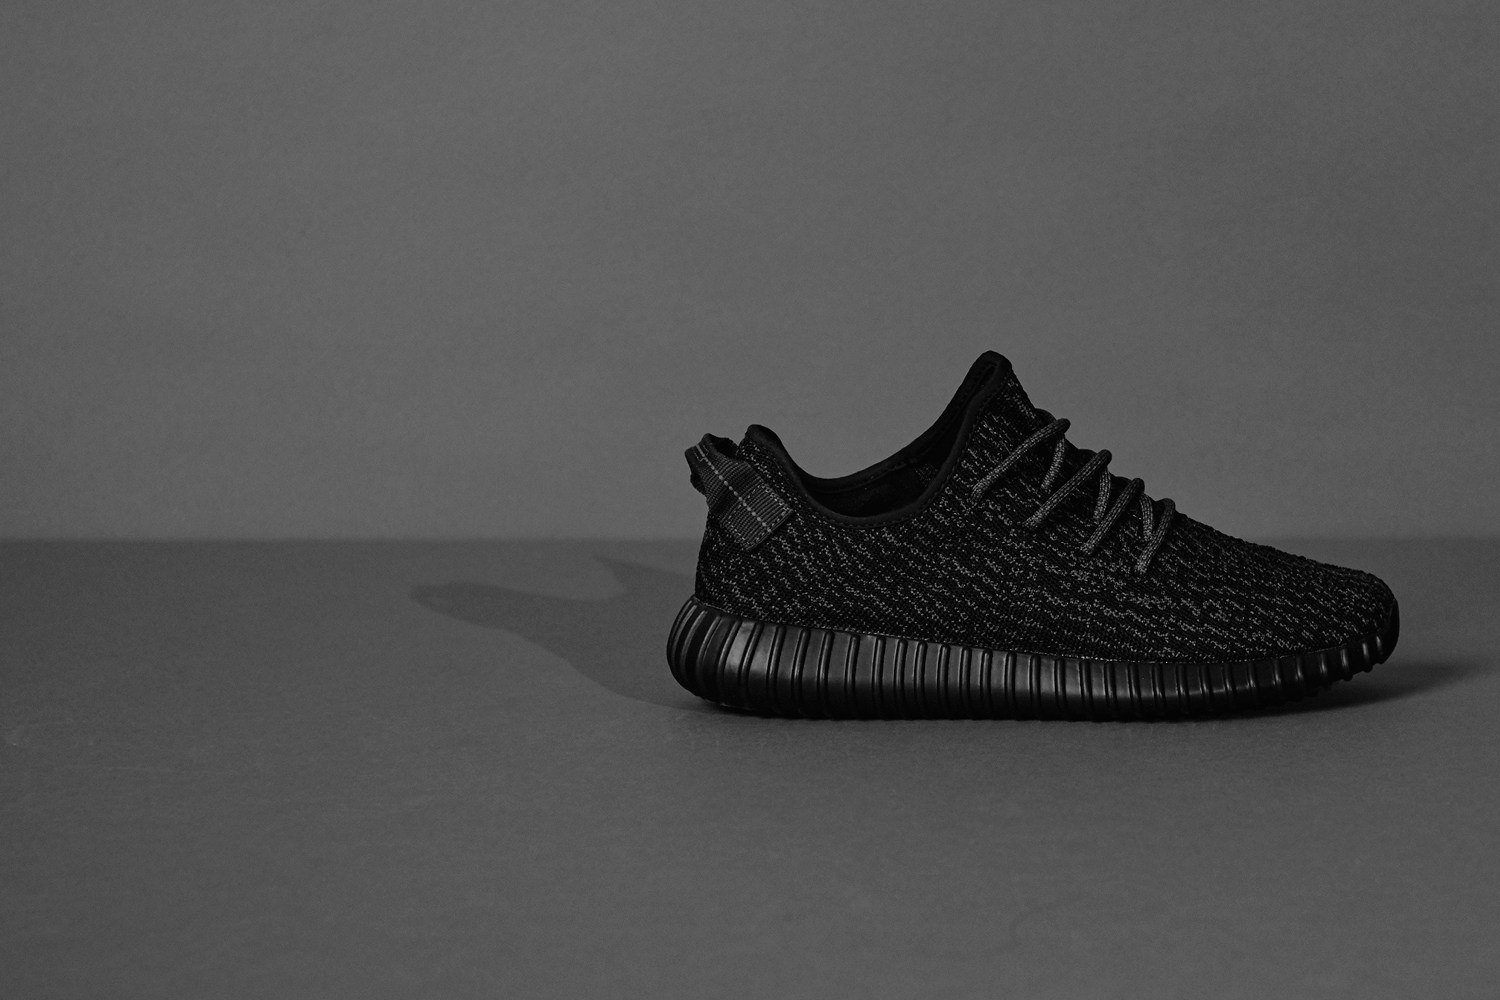 Official Release Info For The adidas YEEZY Boost 350 'Black